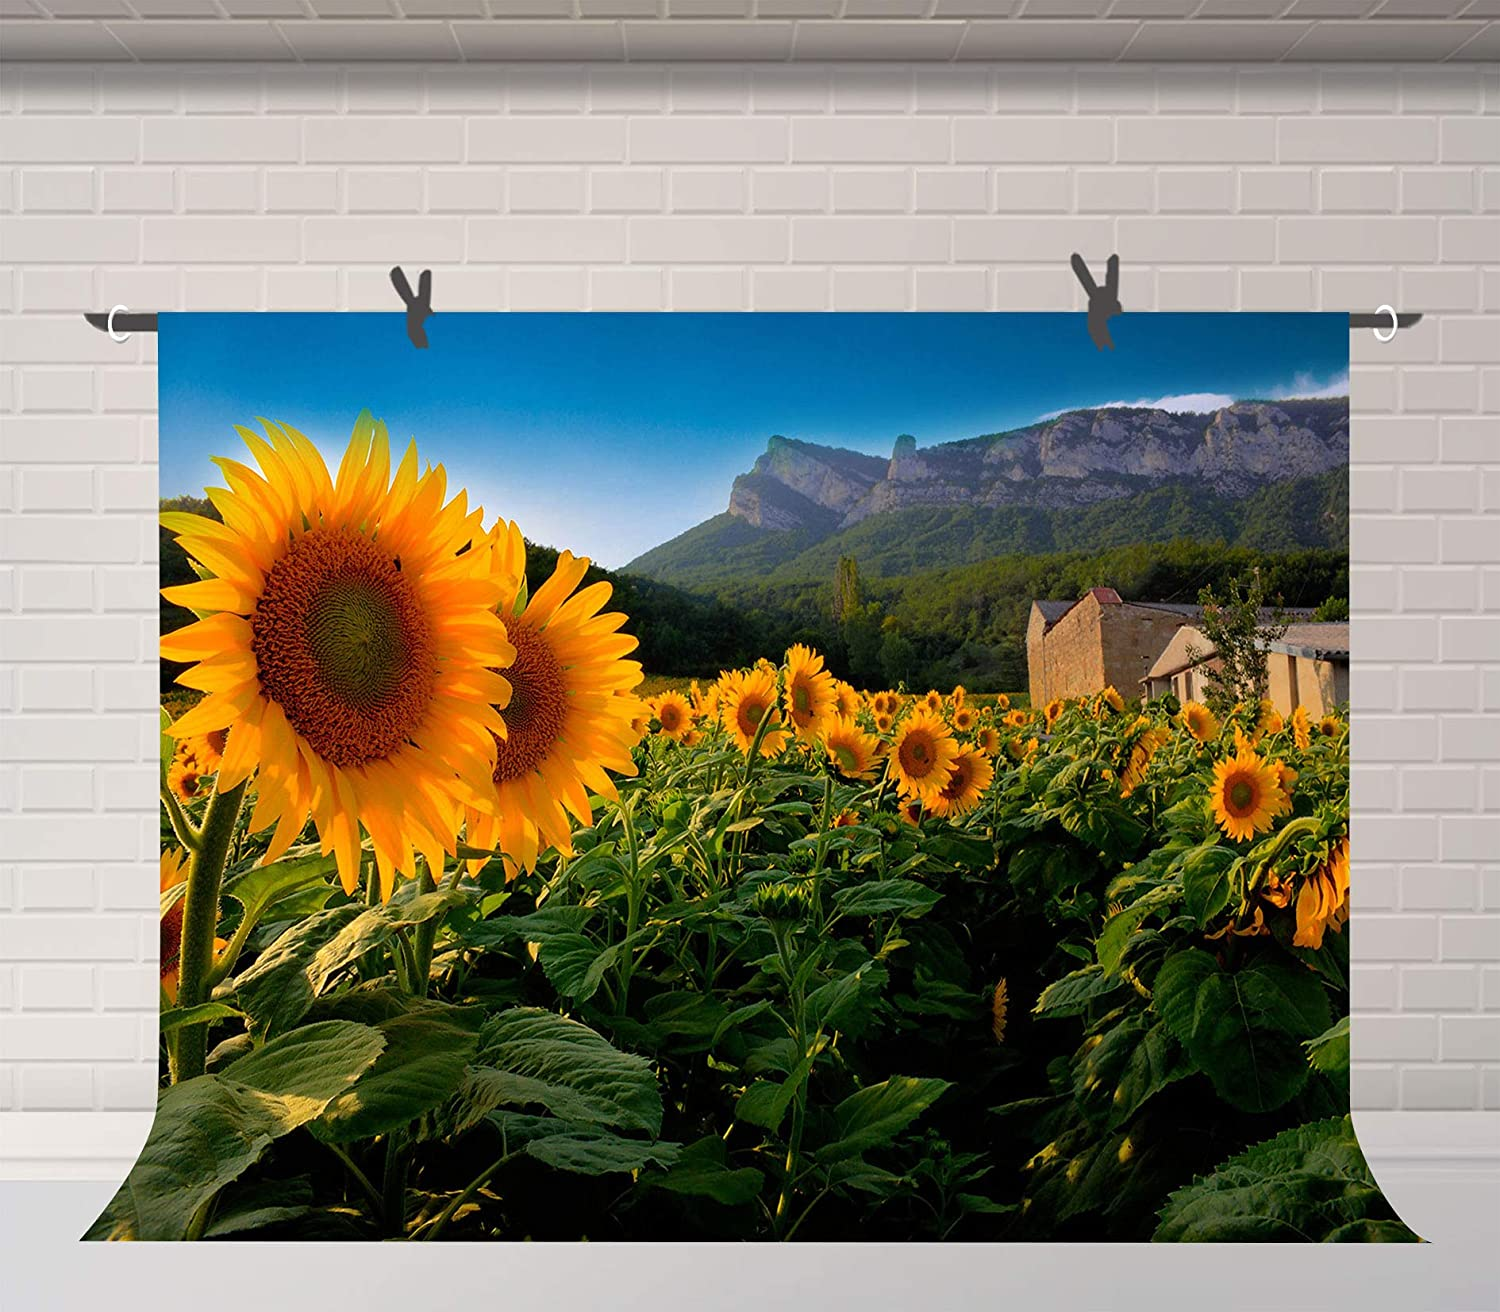 Sunflowers Backdrop Field Scenery Photography Background Photo Props Room Mural FUERMOR 7x5ft LYFU784